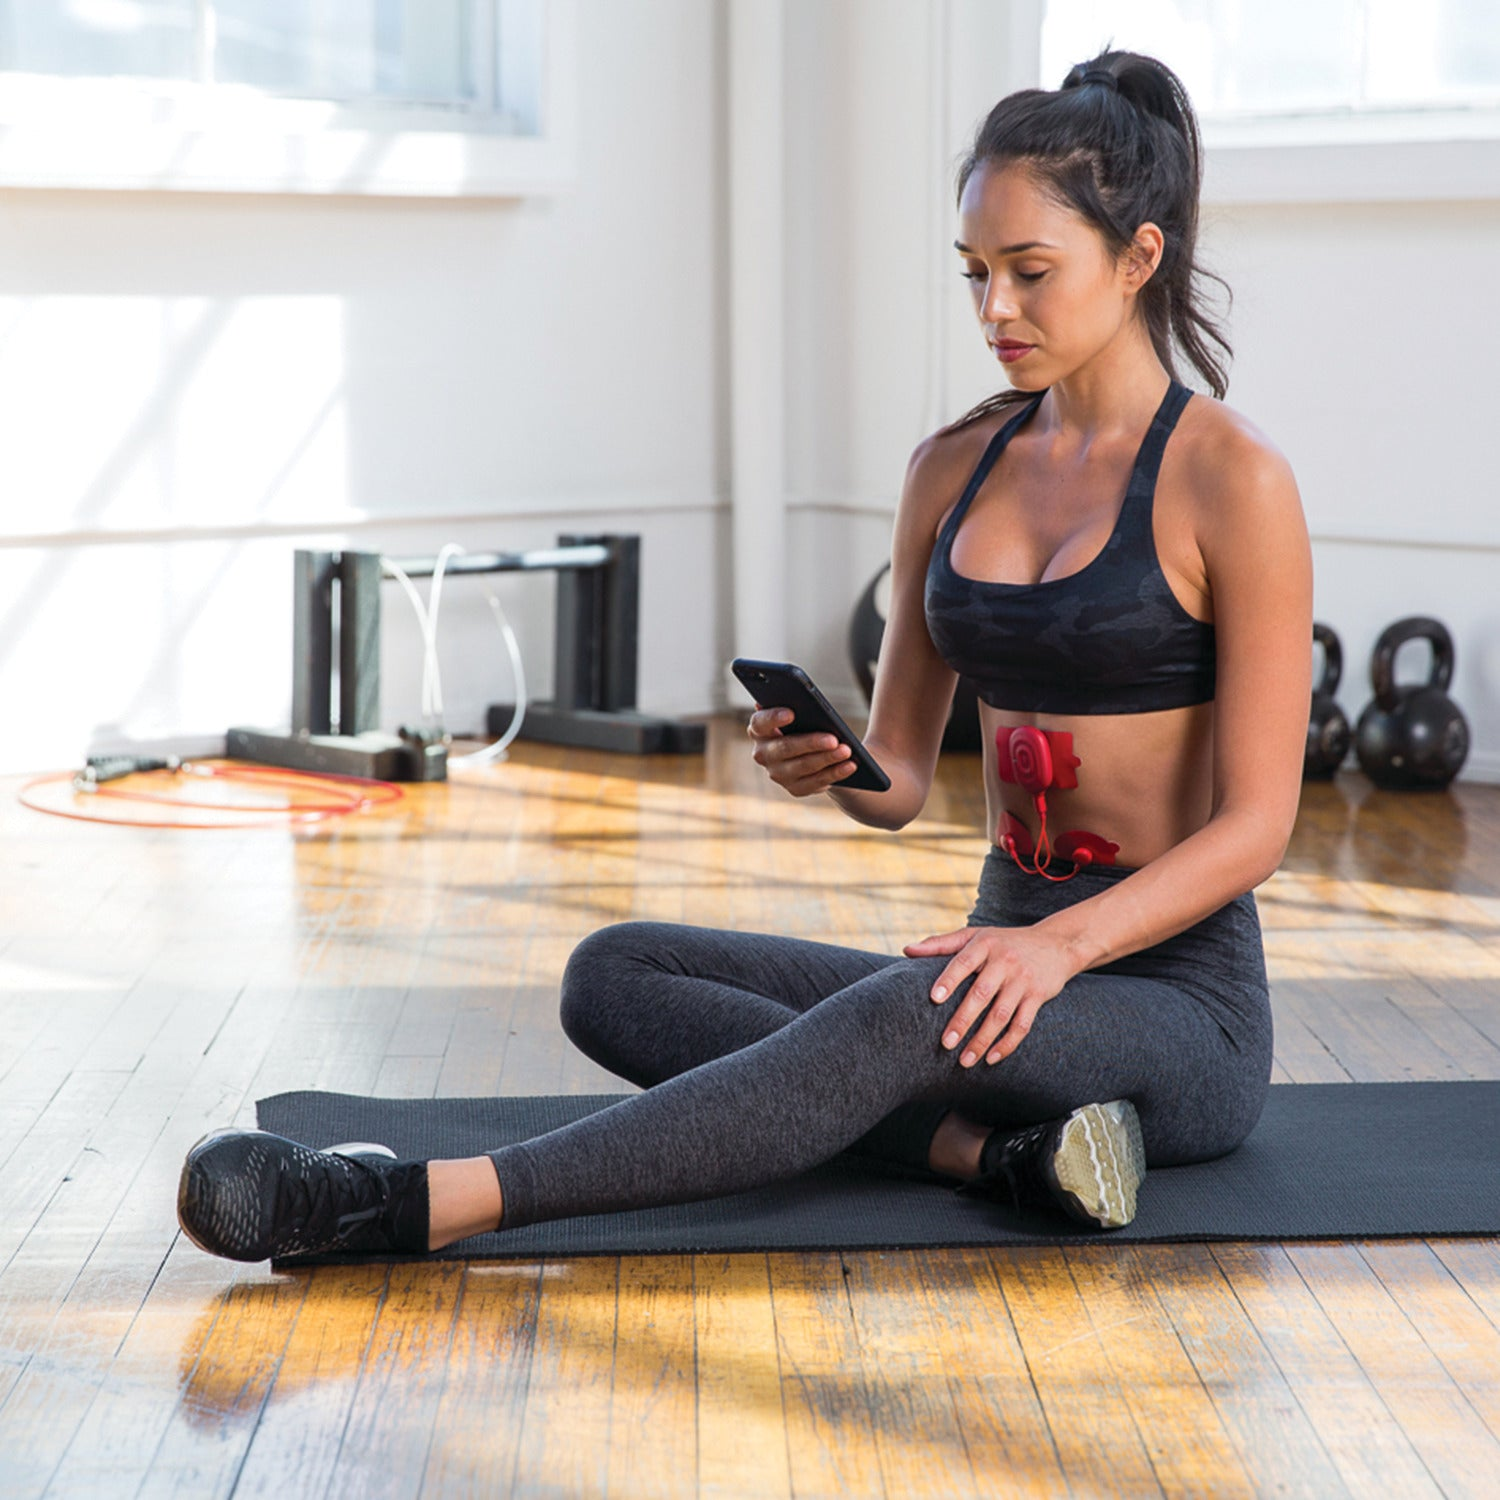 A model in workout attire using the PowerDot on her abs to stimulate pain relief.